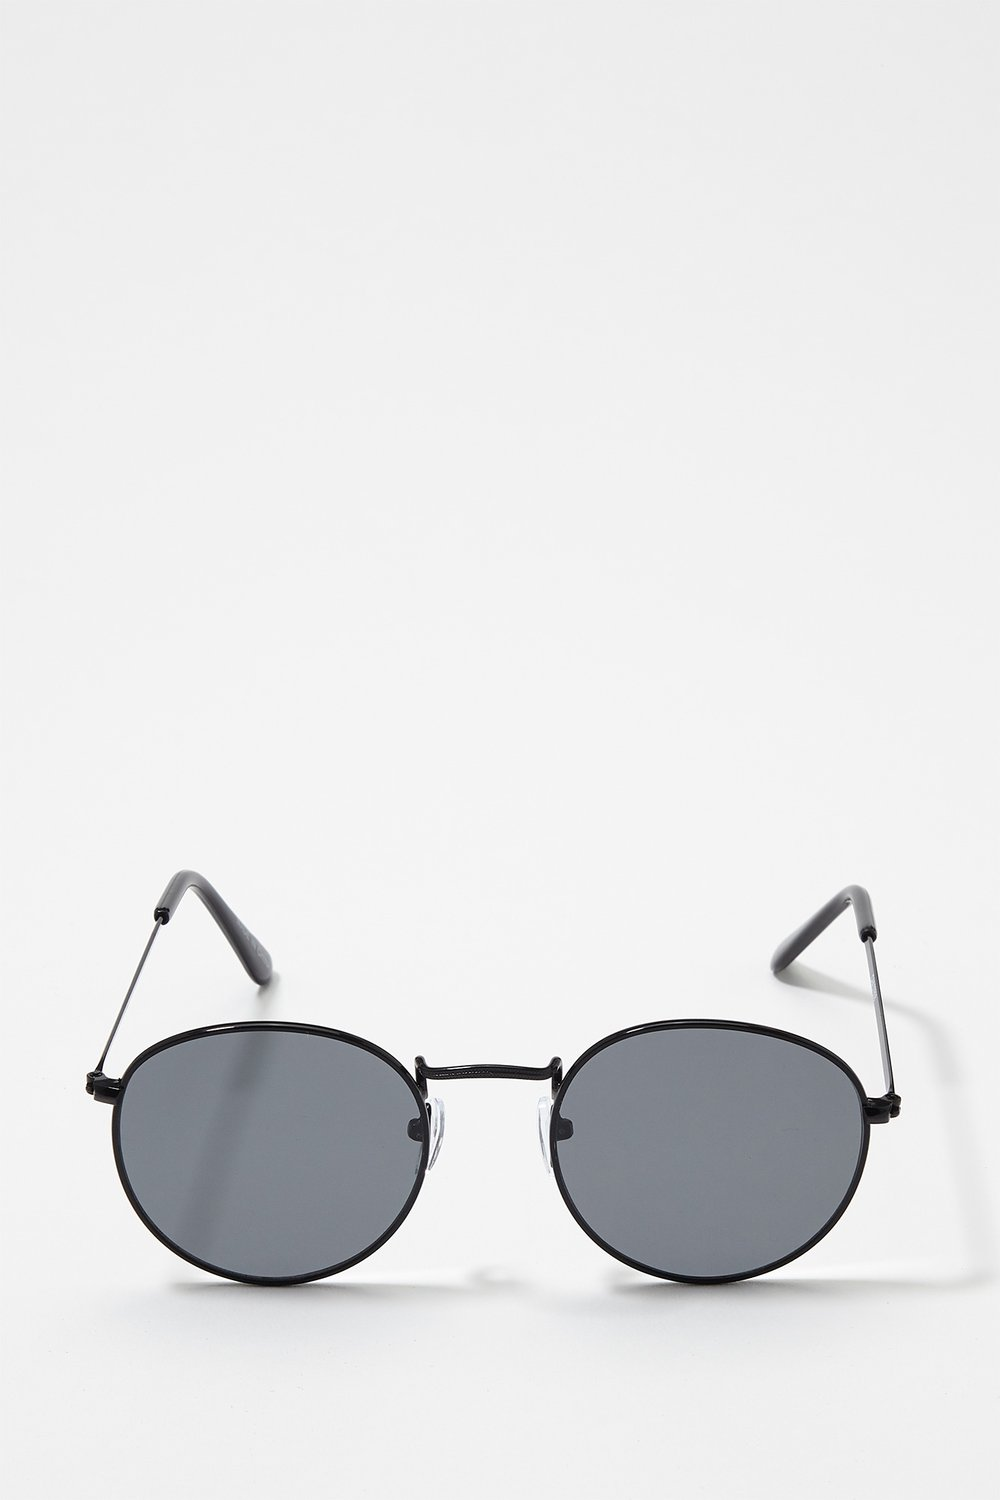 circle sunglasses